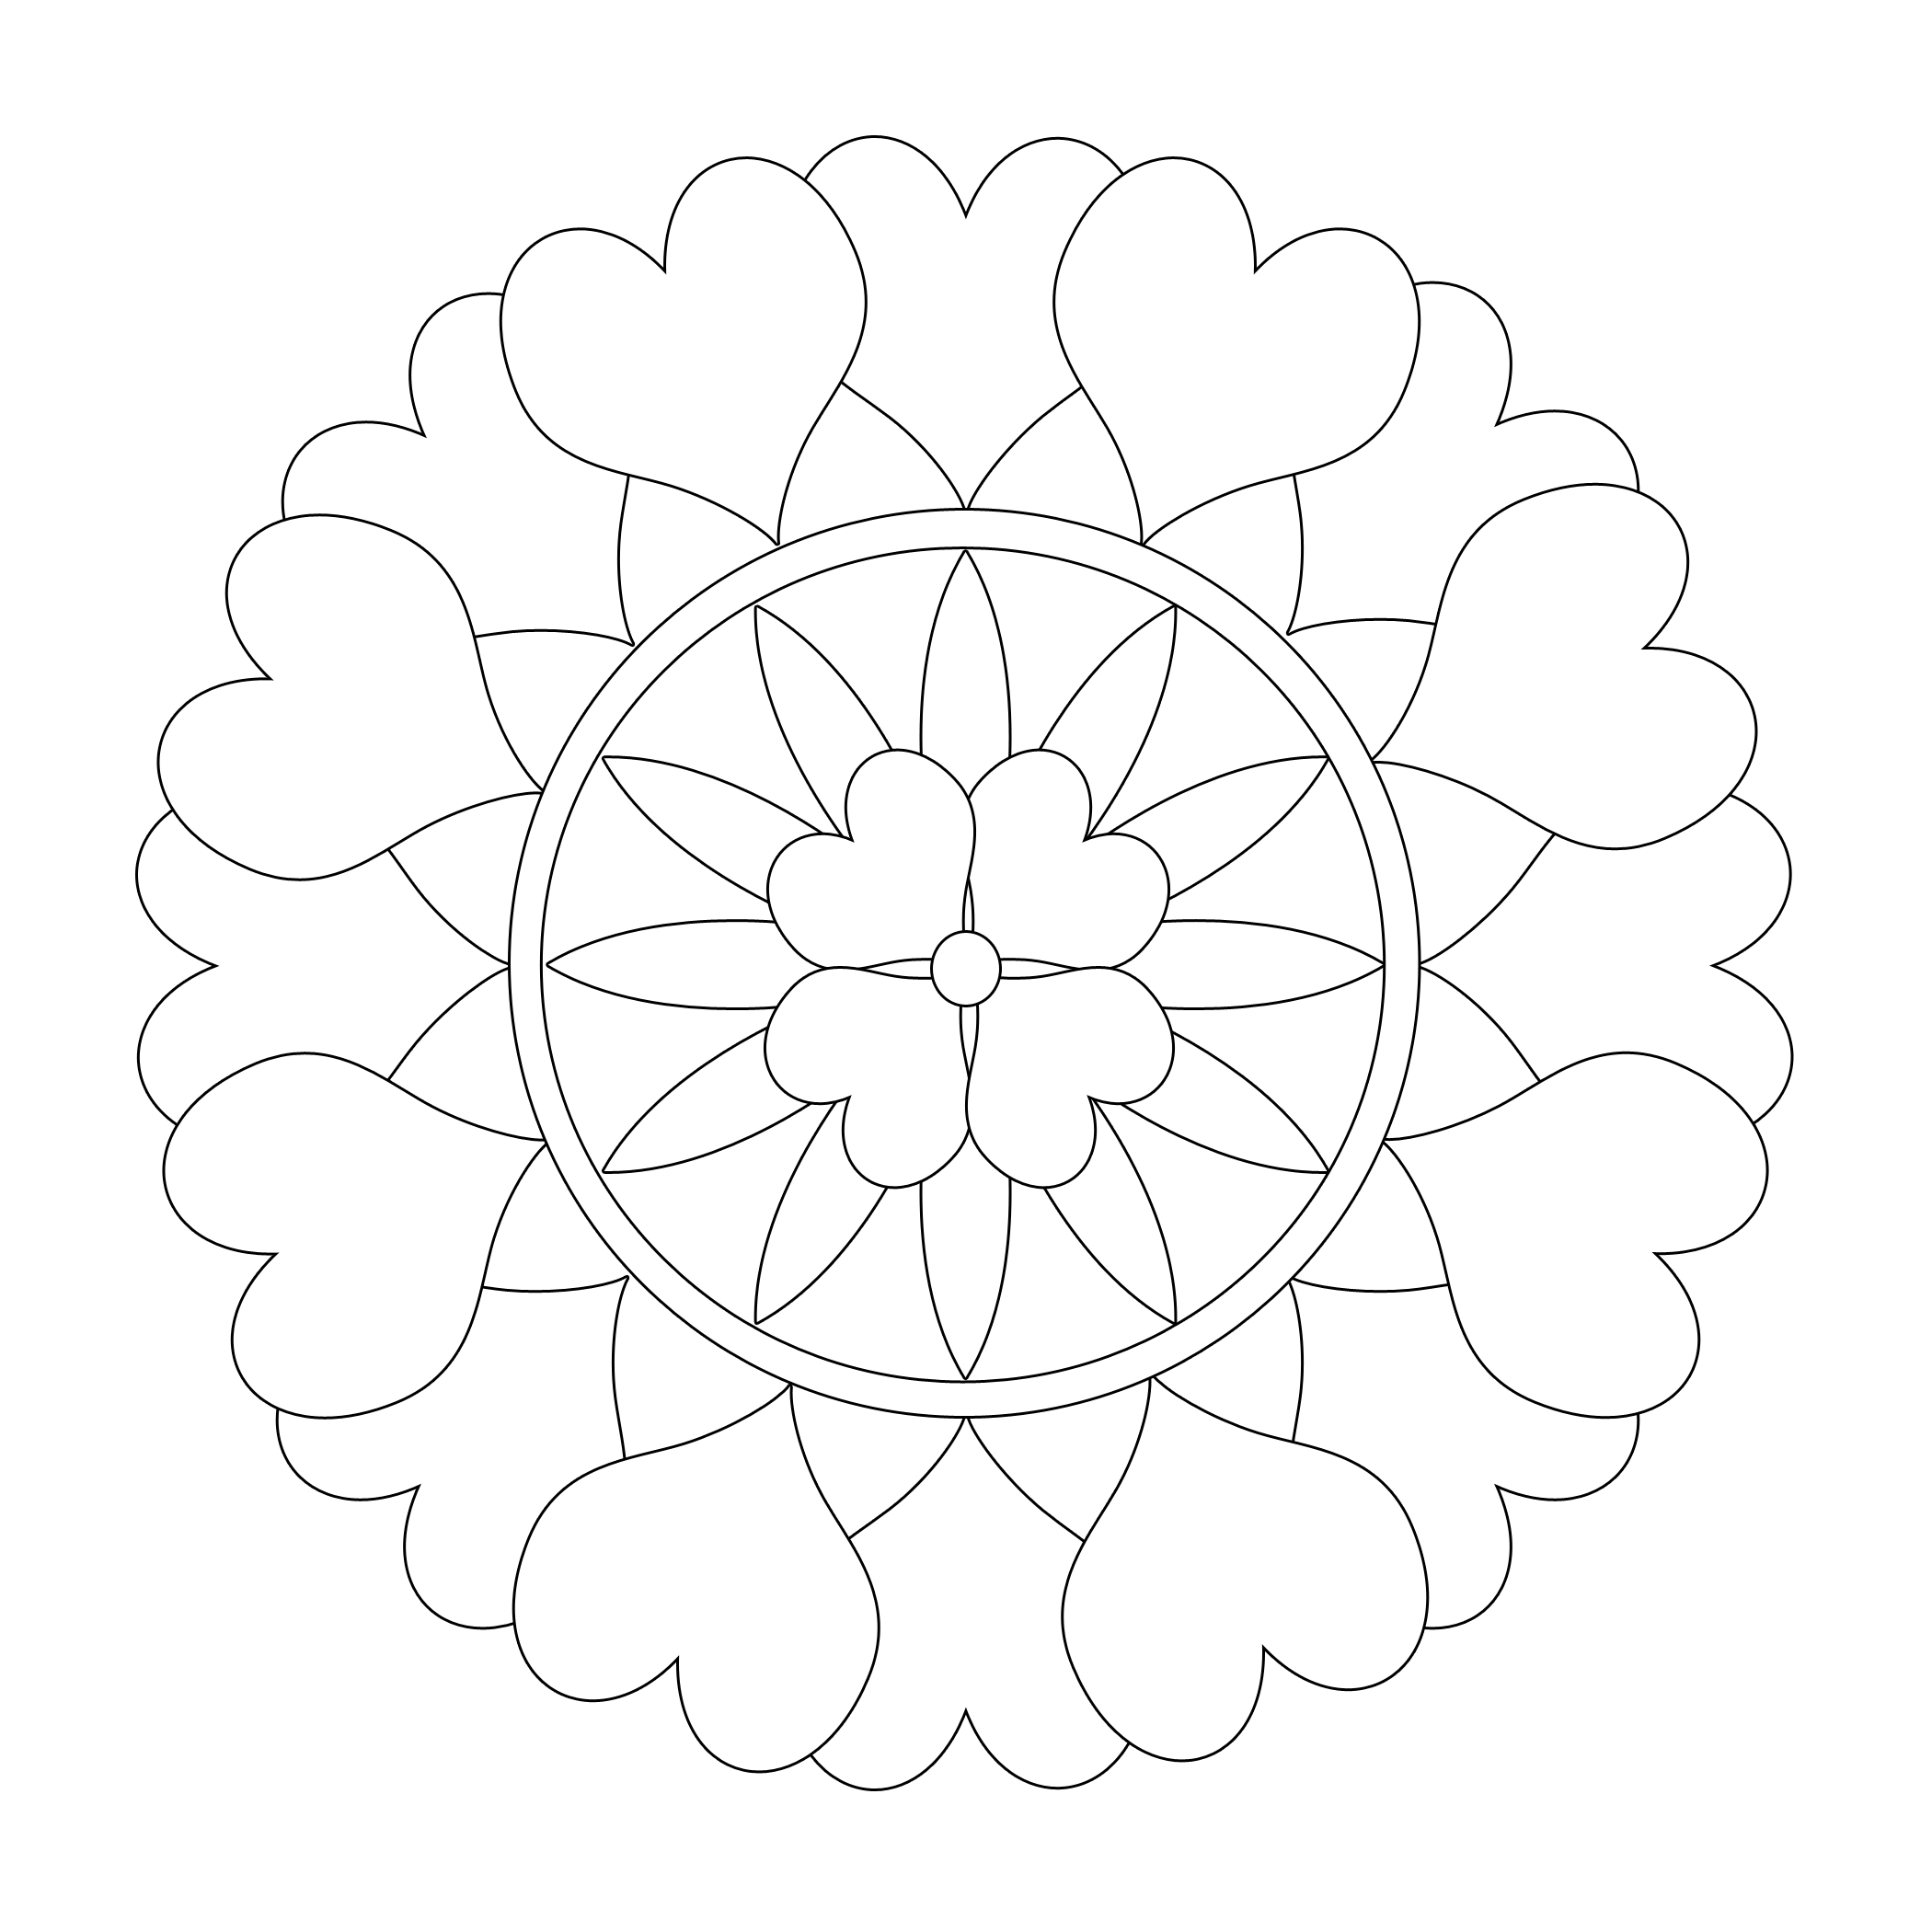 It's just a photo of Sweet Free Printable Mandala Coloring Pages for Adults